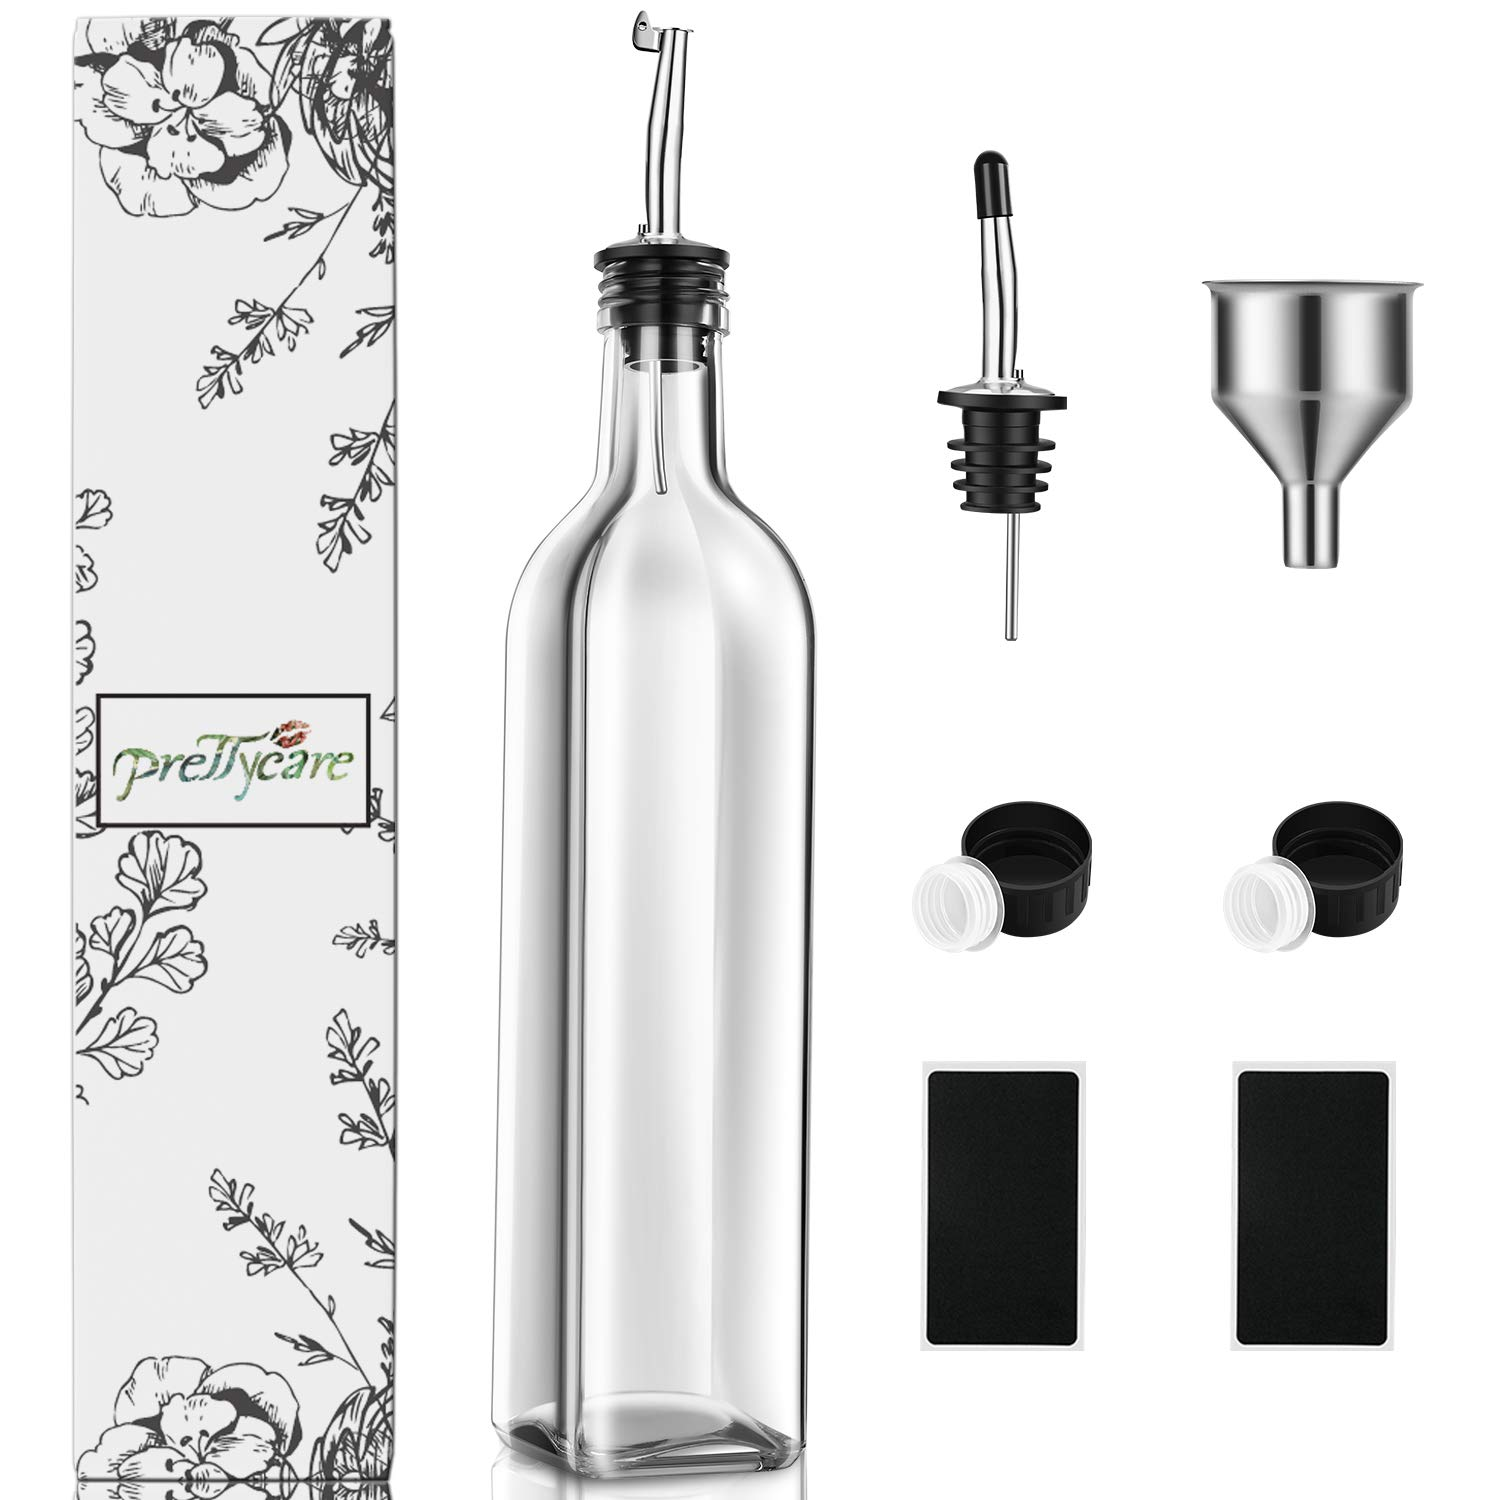 Flip Top Pourer and Funnel Set Clear PrettyCare Olive Oil and Vinegar Dispenser Bottles 17oz 500ml Drip-Free Bottle with Stainless Steel Spout Dark Cruet with Extra Lids and Labels